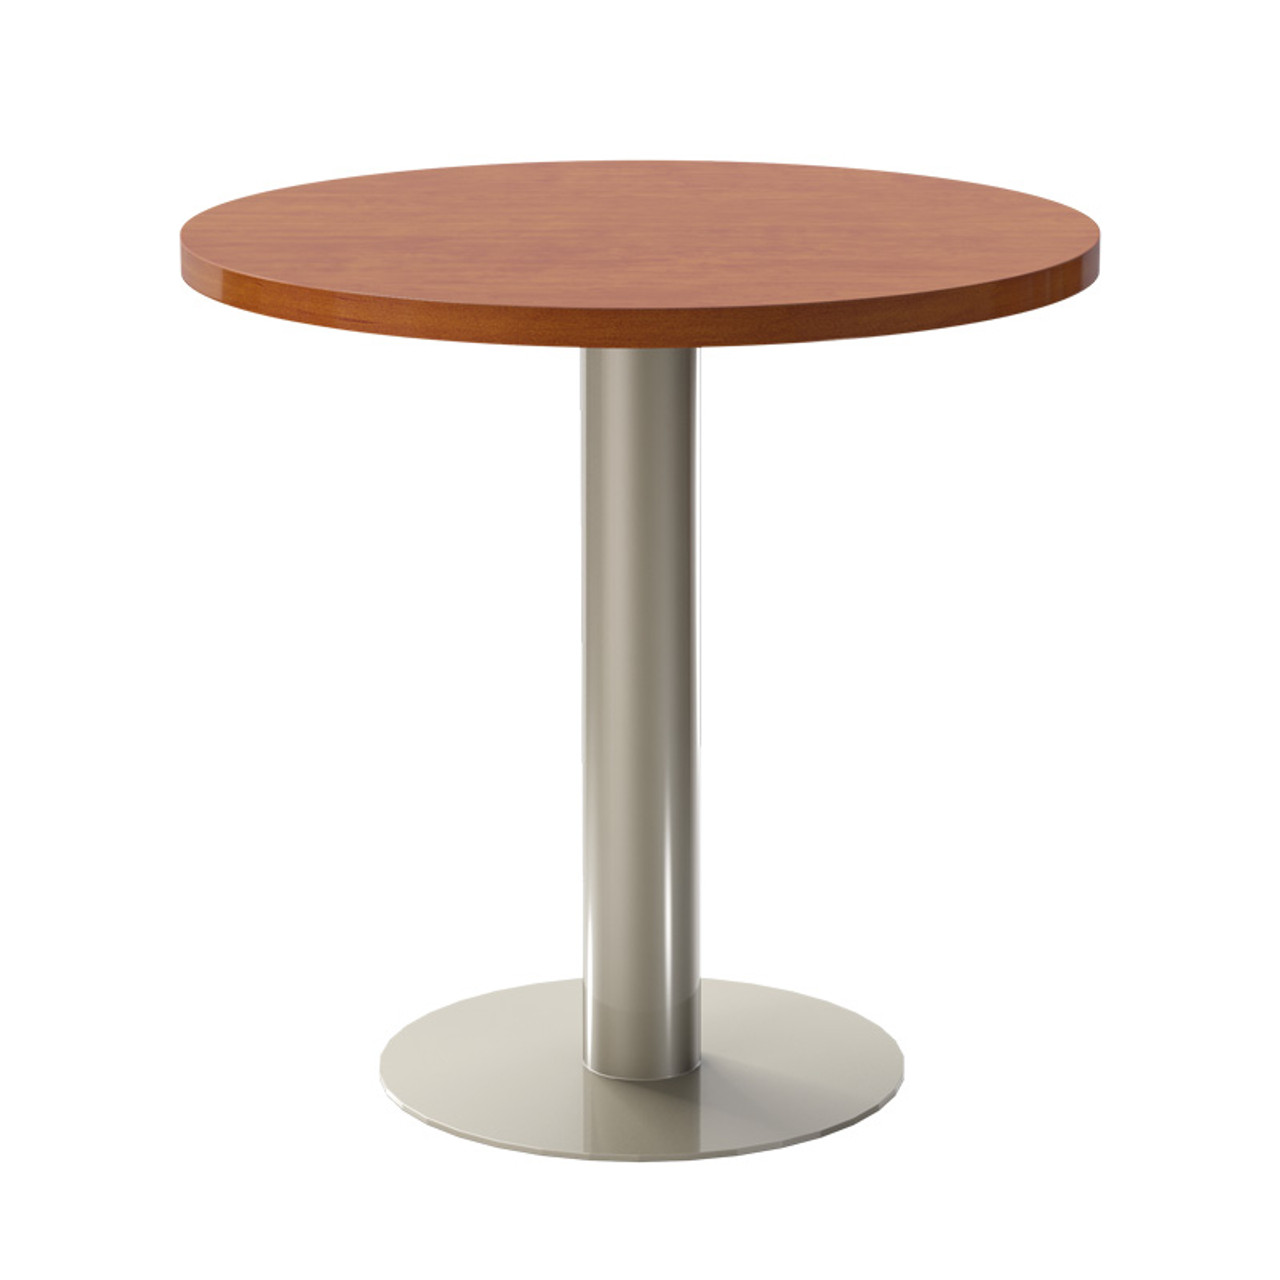 "Round Pedestal Base, 40-3/4"" Height, 23-3/4"" Base Diameter, 4"" diameter Column, with welded mounting plate, tabletop not included - Replacementtablelegs.com"